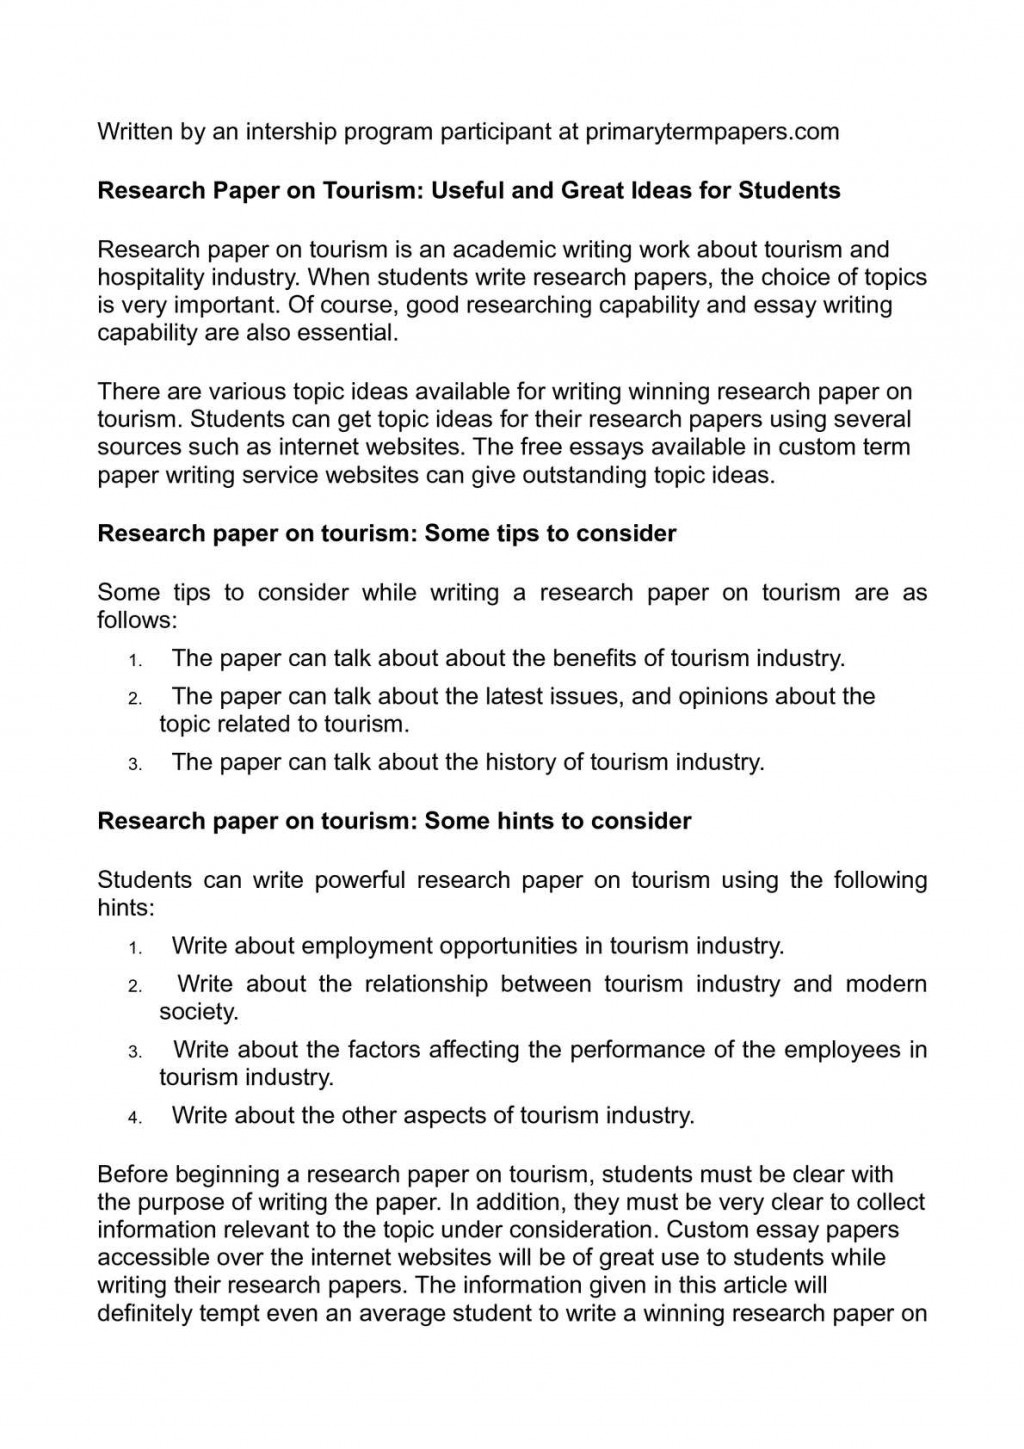 009 Research Paper Ideas For Fascinating Papers In Economics High School College Large